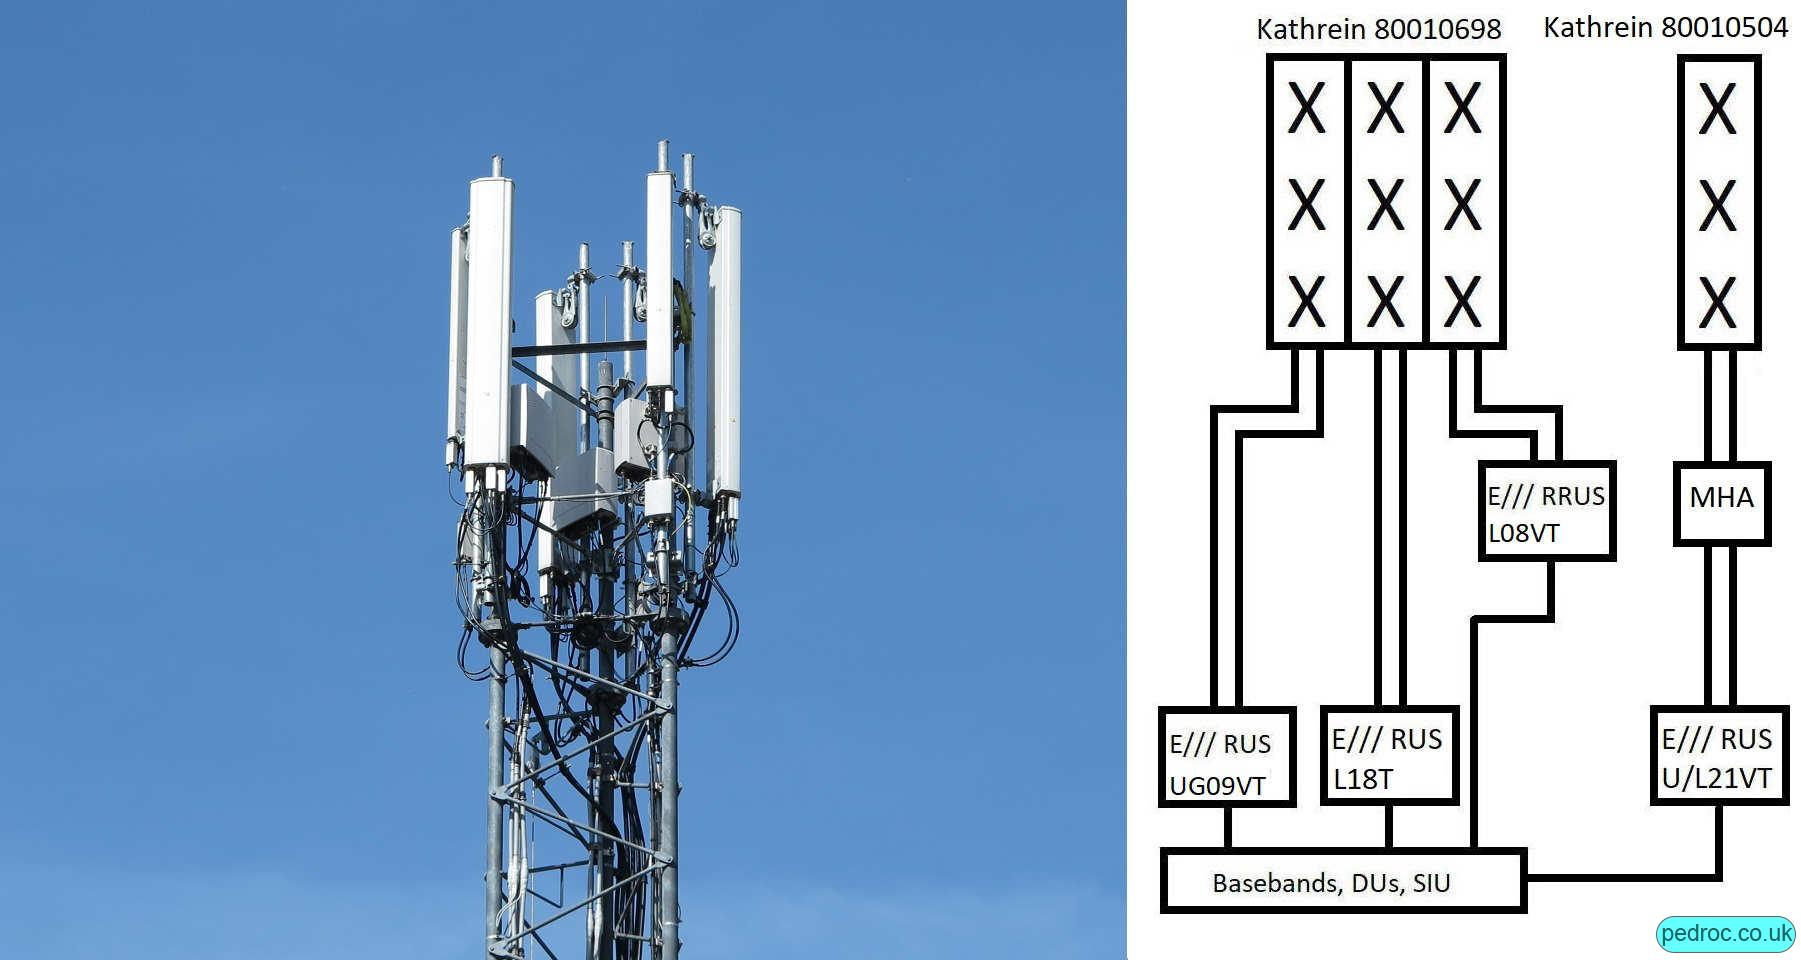 High Capacity Configuration using triple band Kathrein 80010698 antennas and a single band Kathrein 80010504 or similar. 80010698 has UG09, L18, L08 off RRUS11 with the other antennas carrying the 2100MHz.